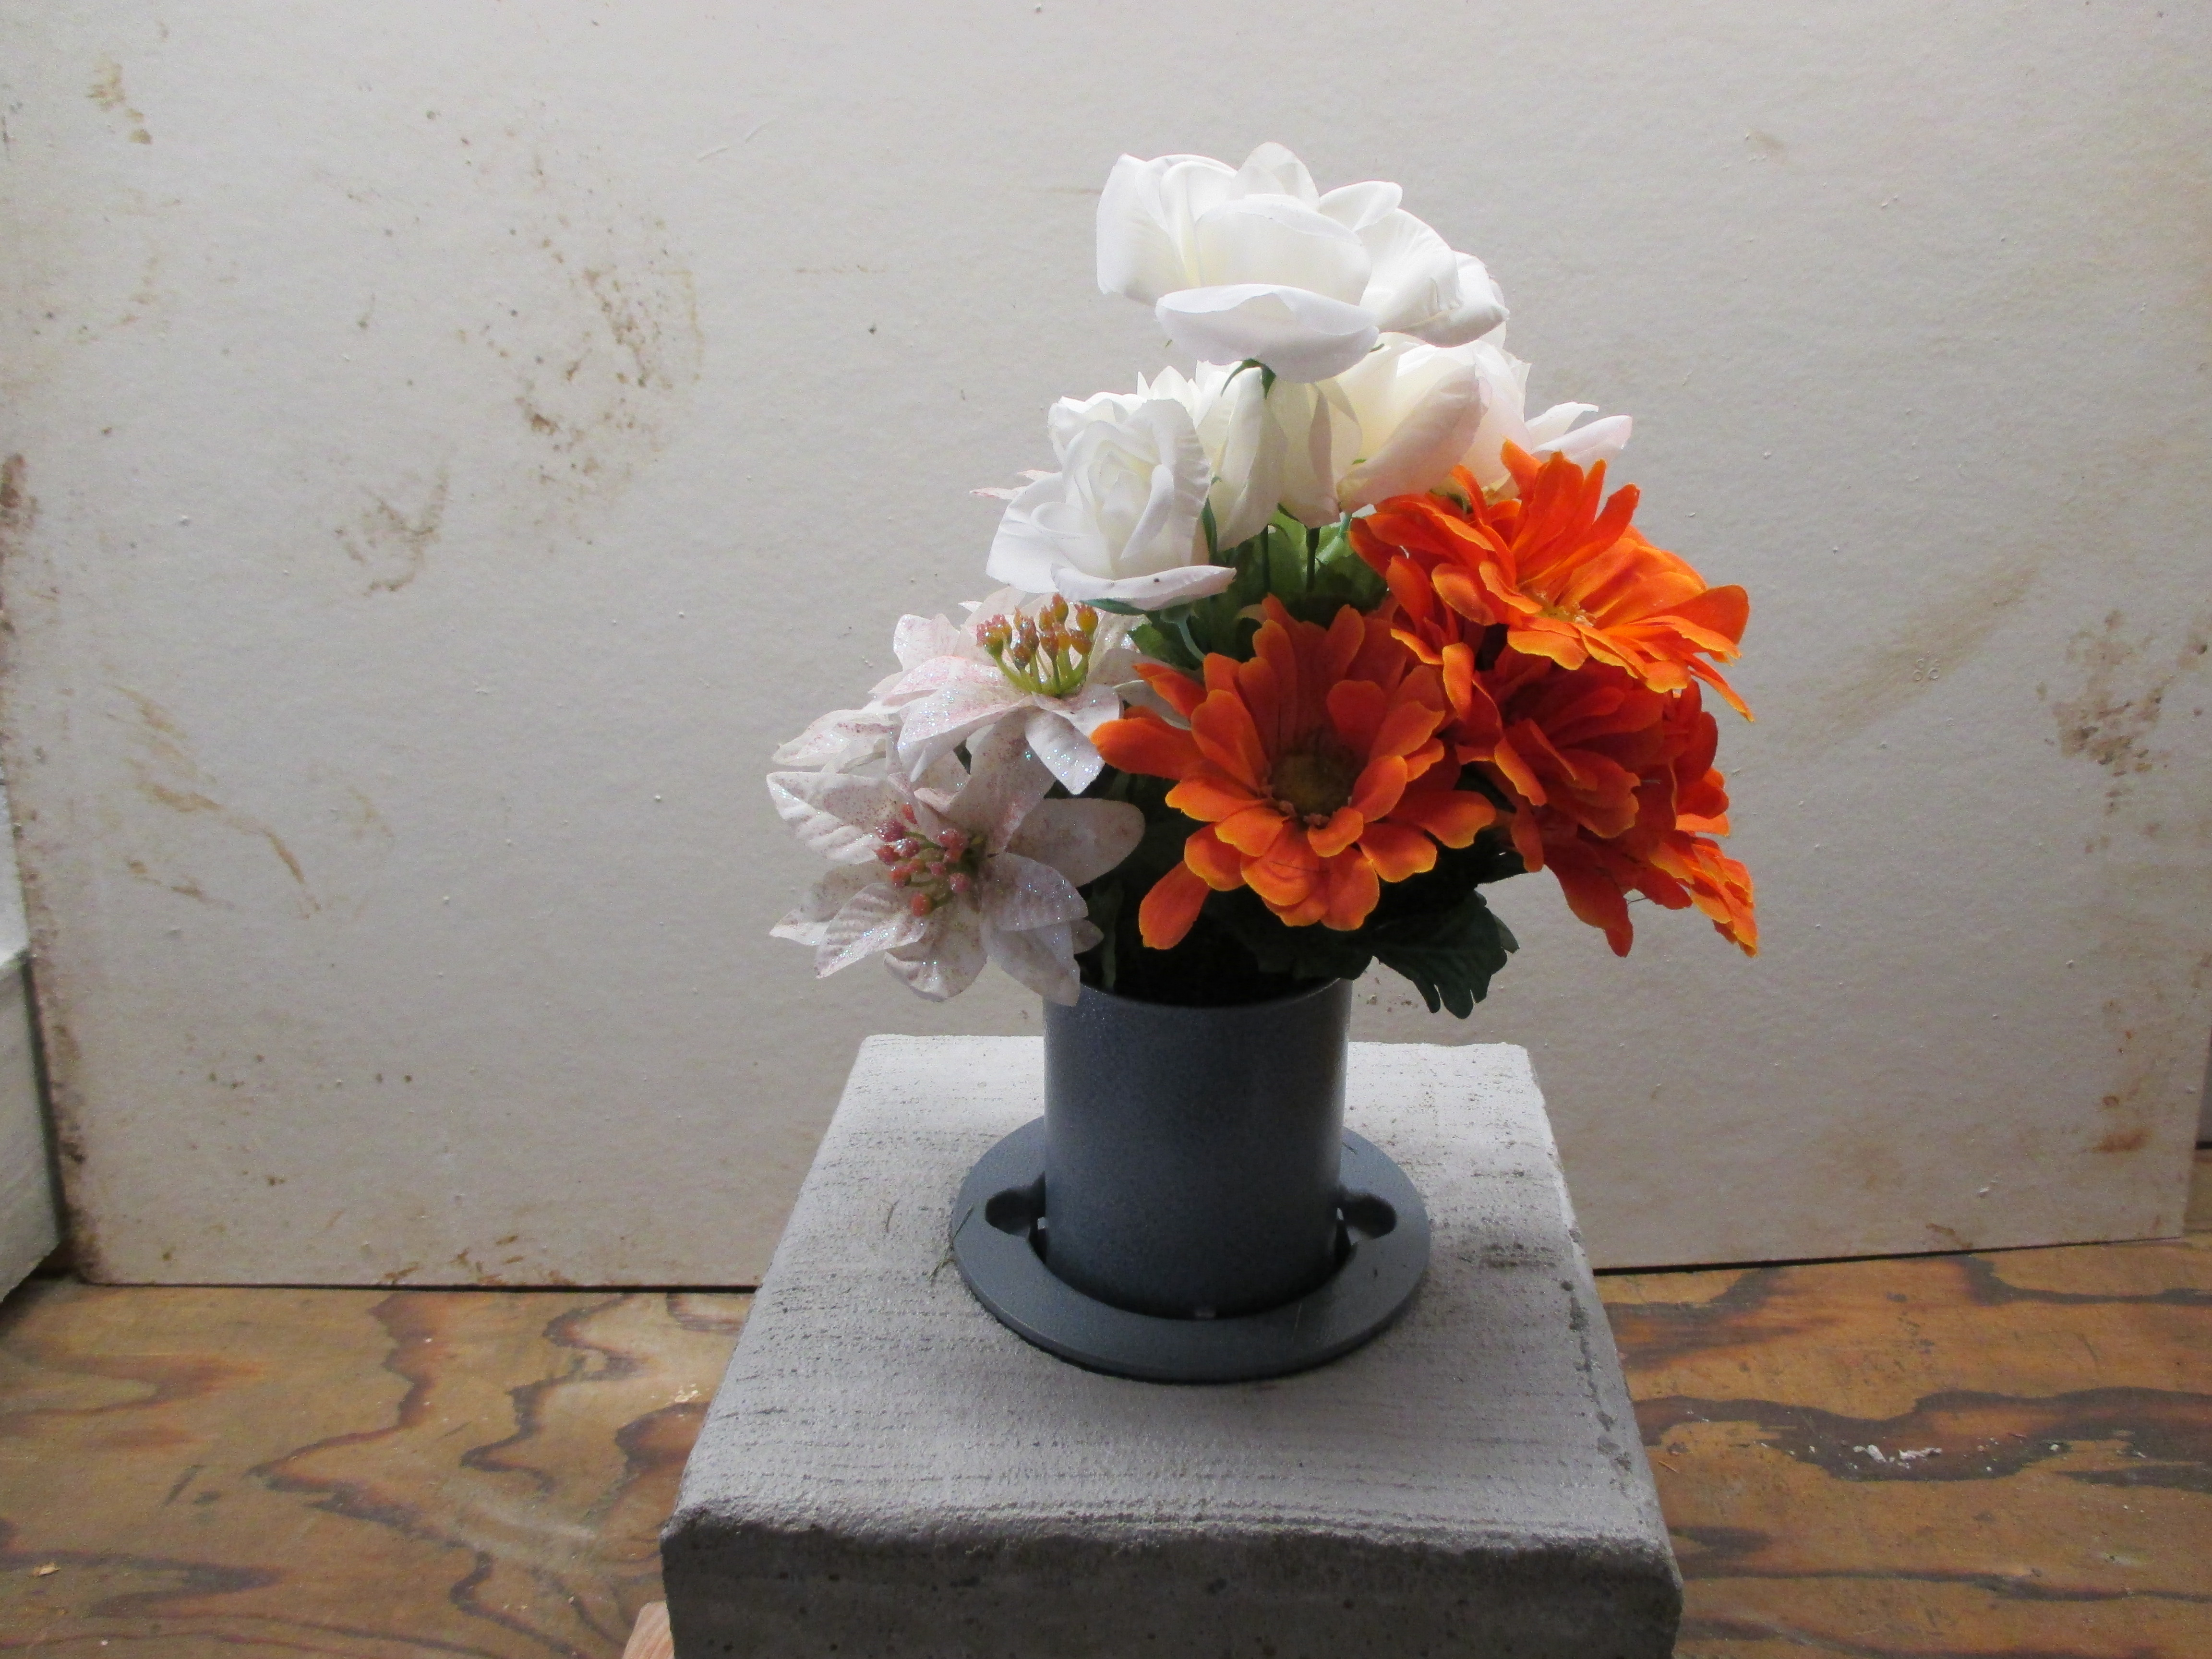 r vases vase decorations cemetery flower memorial of products s